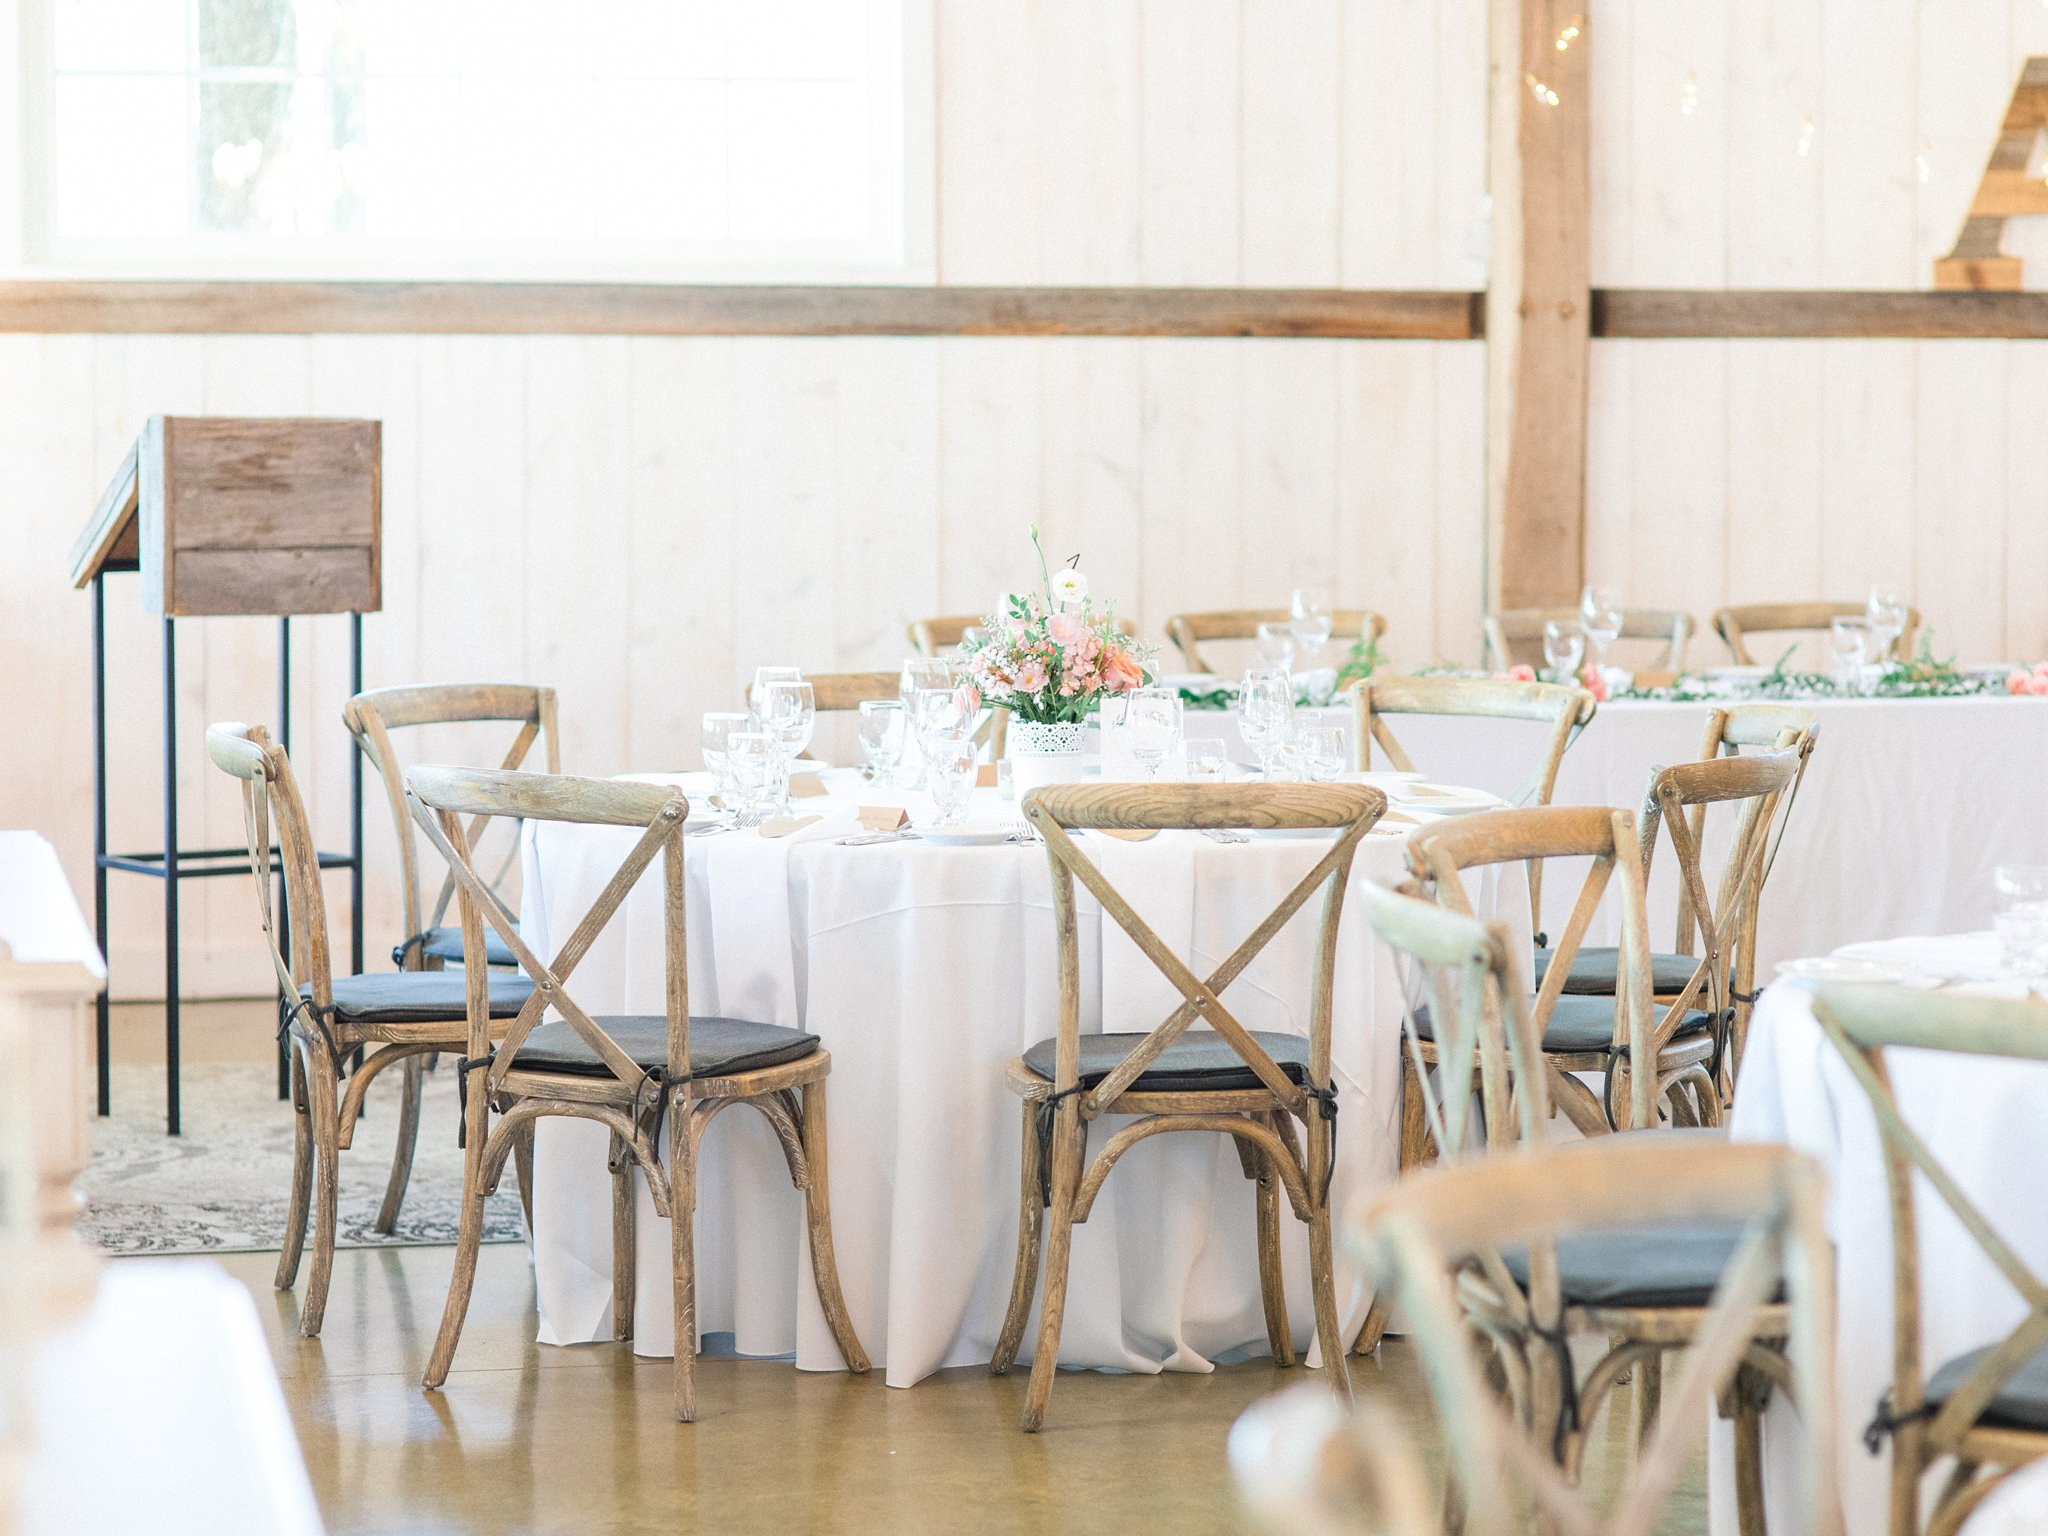 Round tables Dog-friendly wedding venue Ottawa Stonefields Amy Pinder Photography